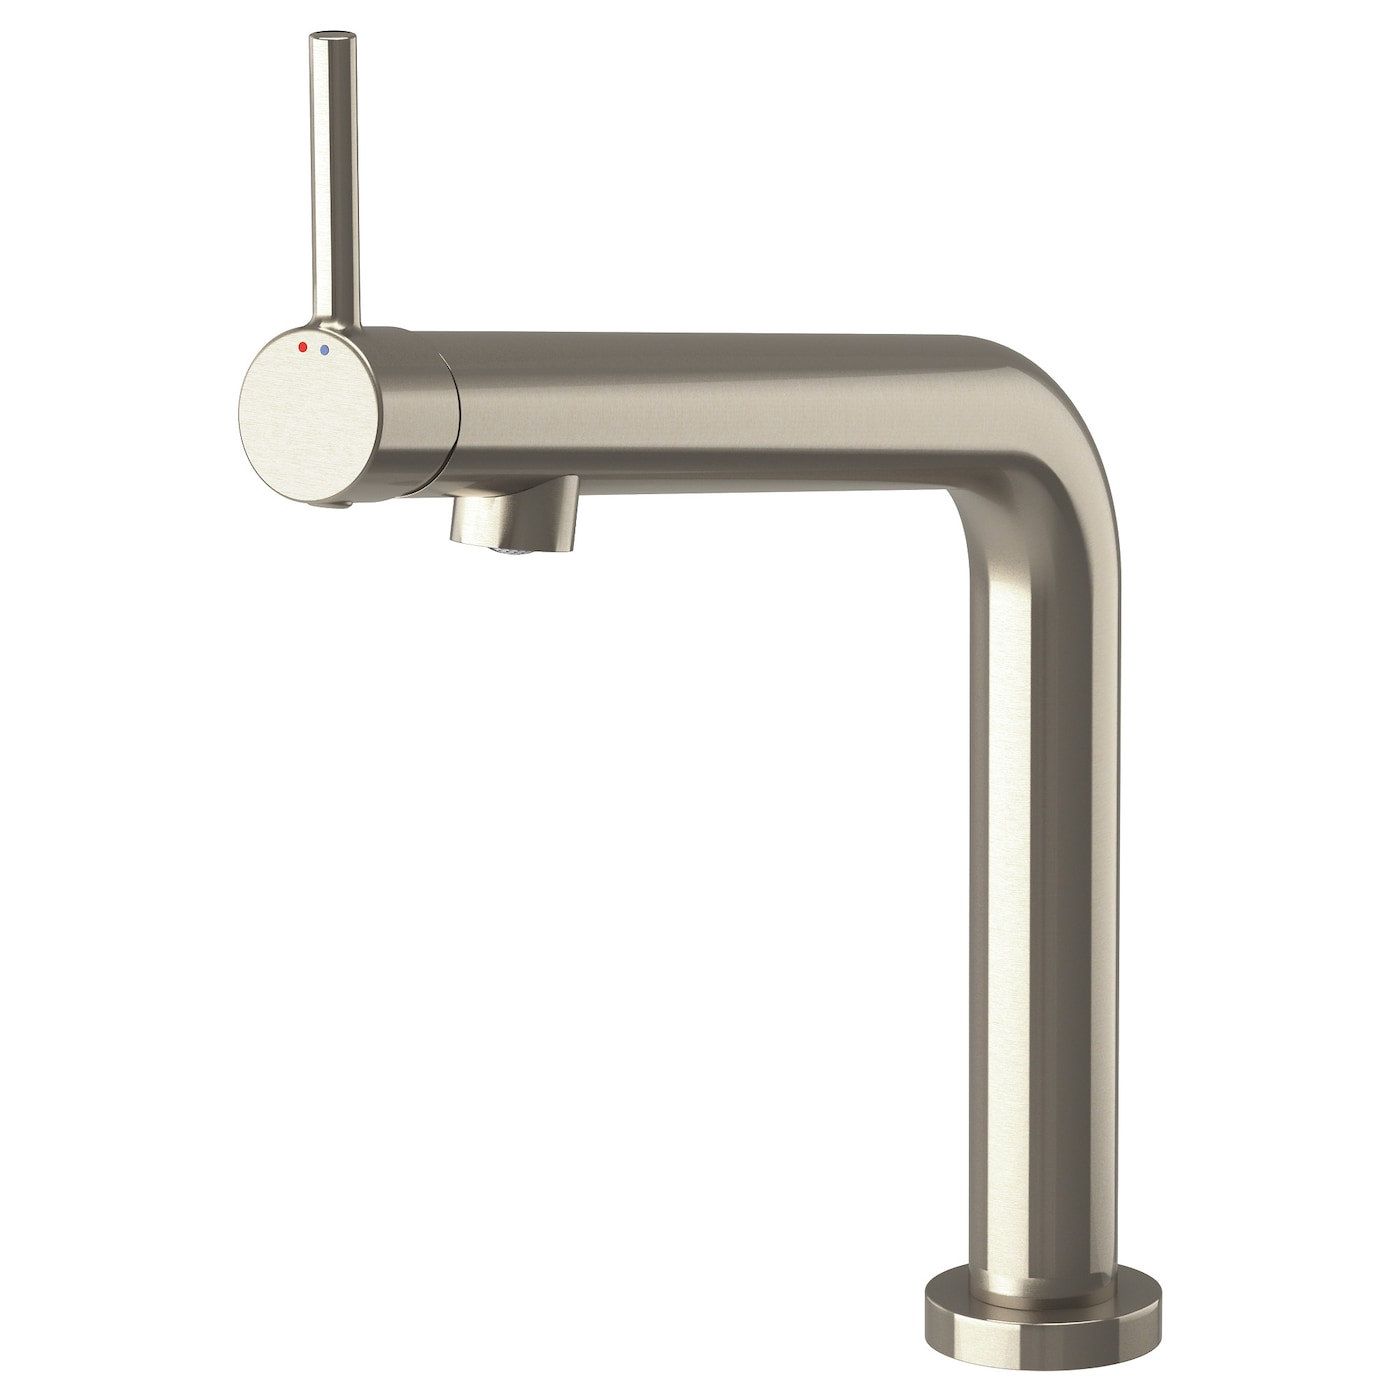 IKEA BOSJÖN kitchen mixer tap 10 year guarantee. Read about the terms in the guarantee brochure.